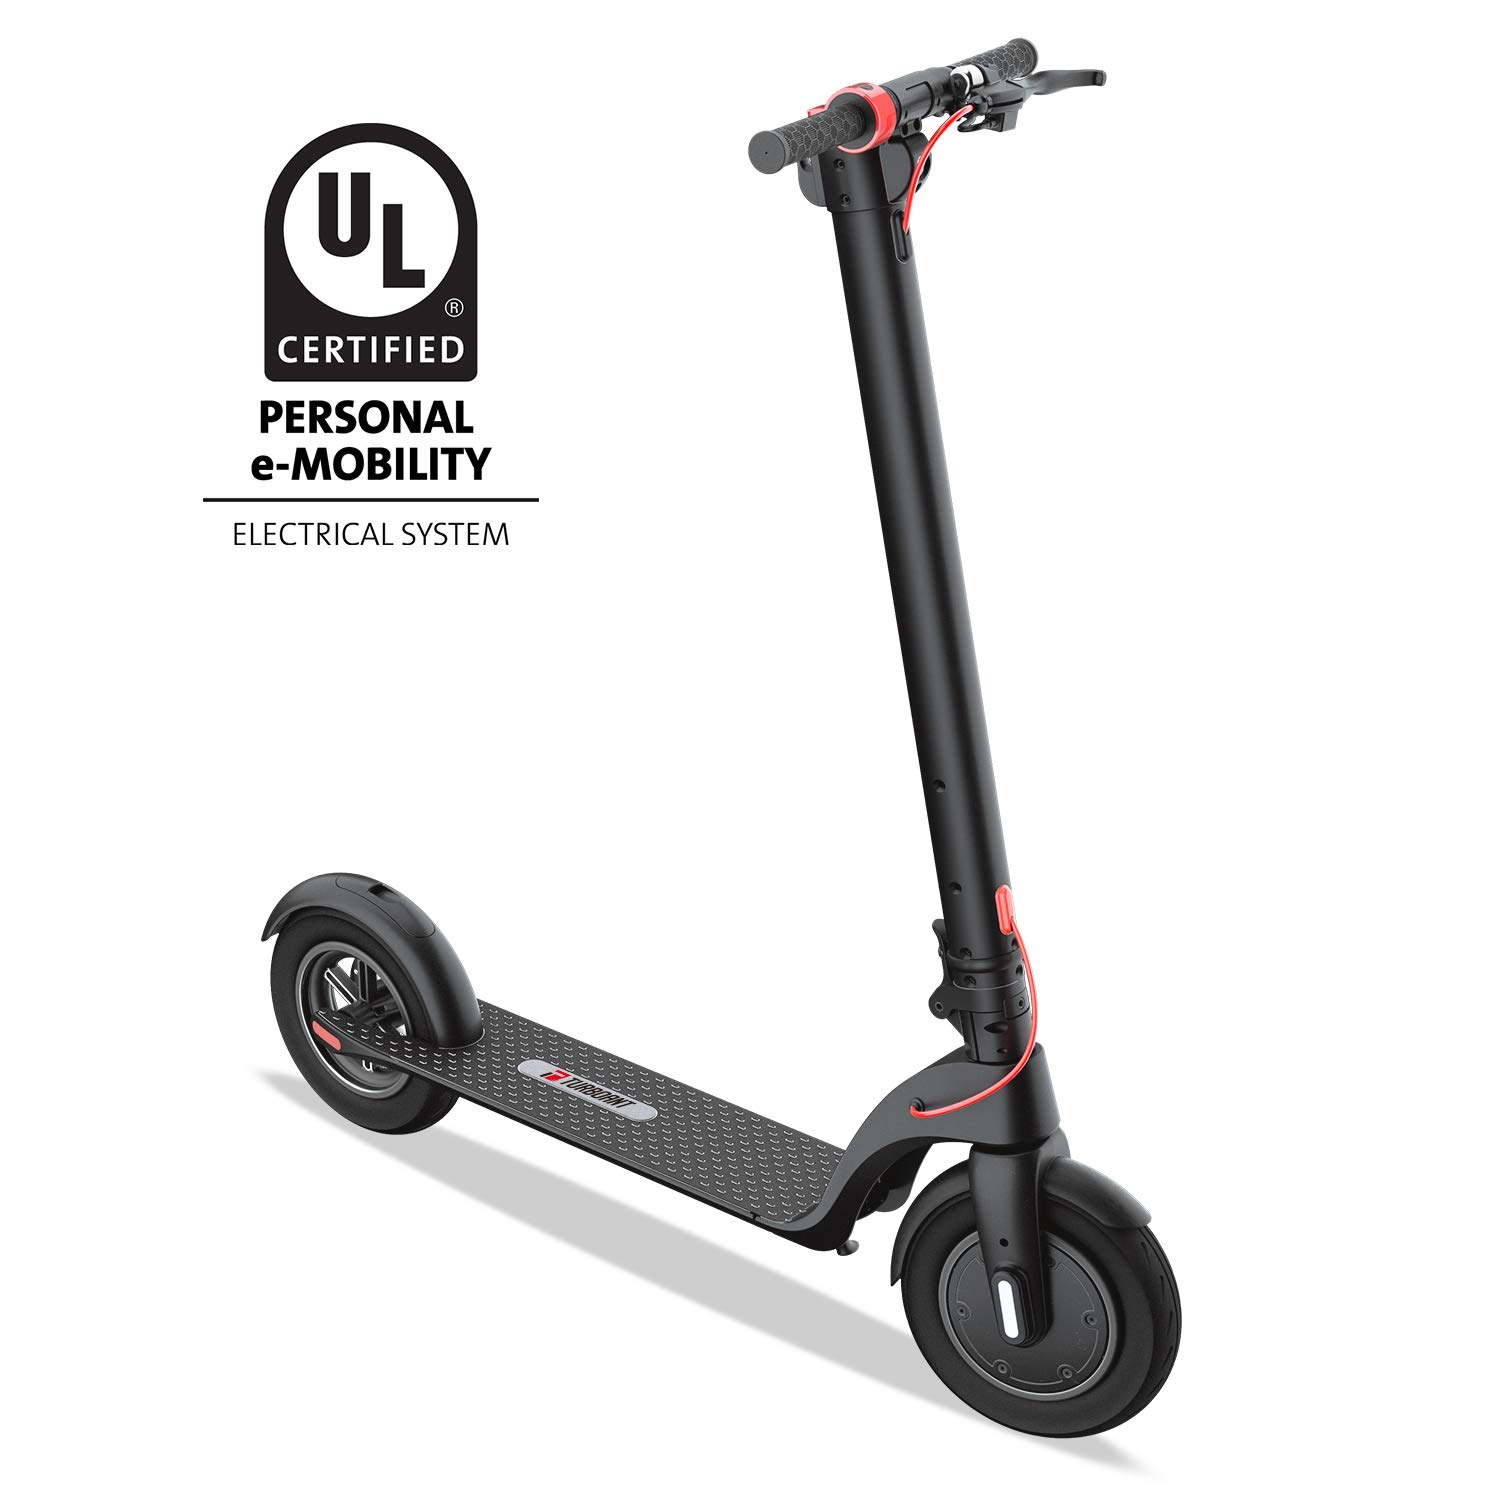 Turboant Folding Electric Scooter X7 with Detachable Battery Pack, 350W Motor Up to 19.9 MPH, 8.5'' Tubeless Pneumatic Front and Rear Tires